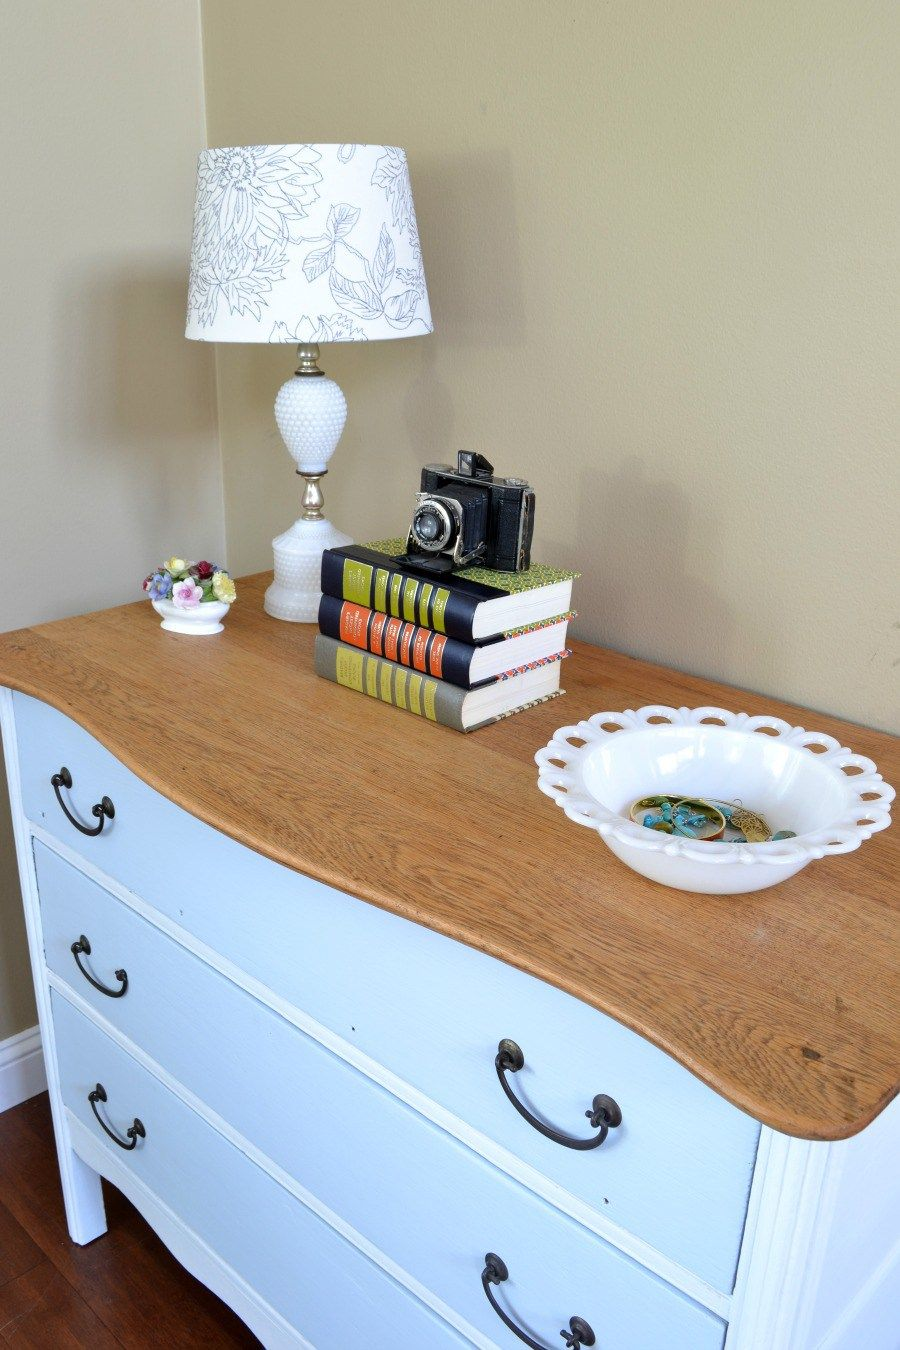 Two Toned Dresser With Natural Wood Top White Dresser Wood Top Natural Wood Dresser Furniture Inspiration White and natural wood dresser